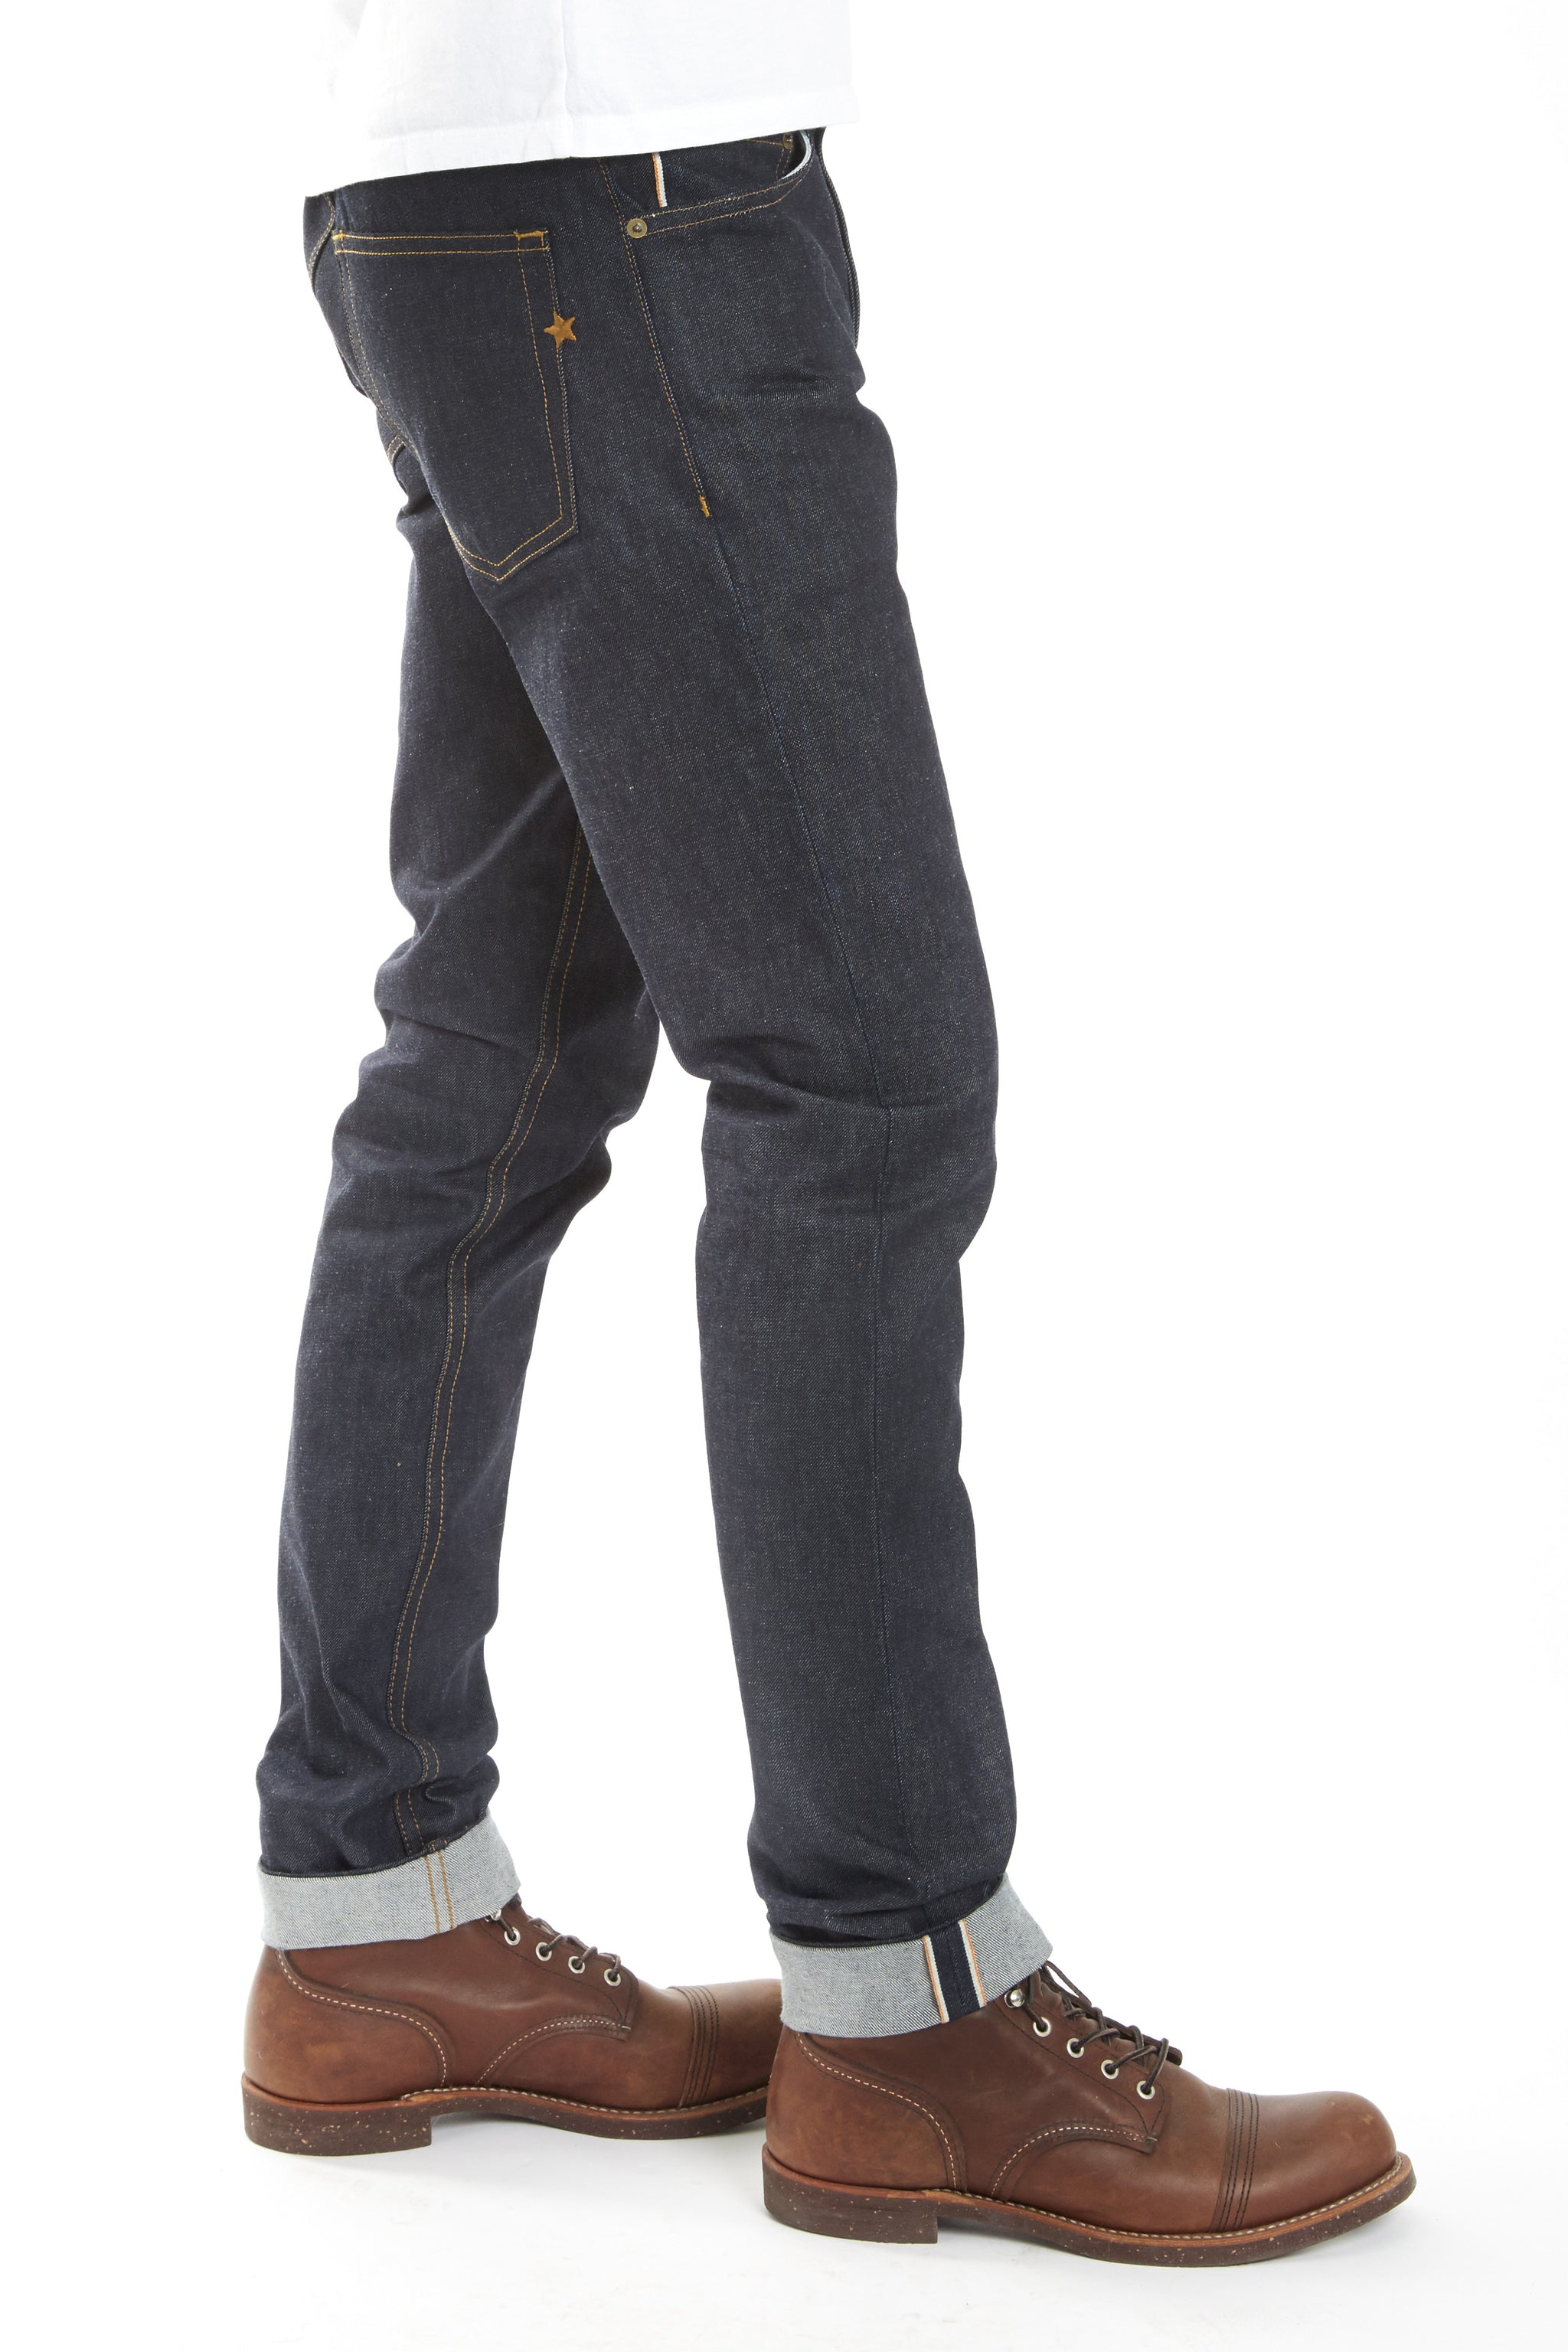 The Regular Taper 21.5oz Heavyweight Selvage Denim